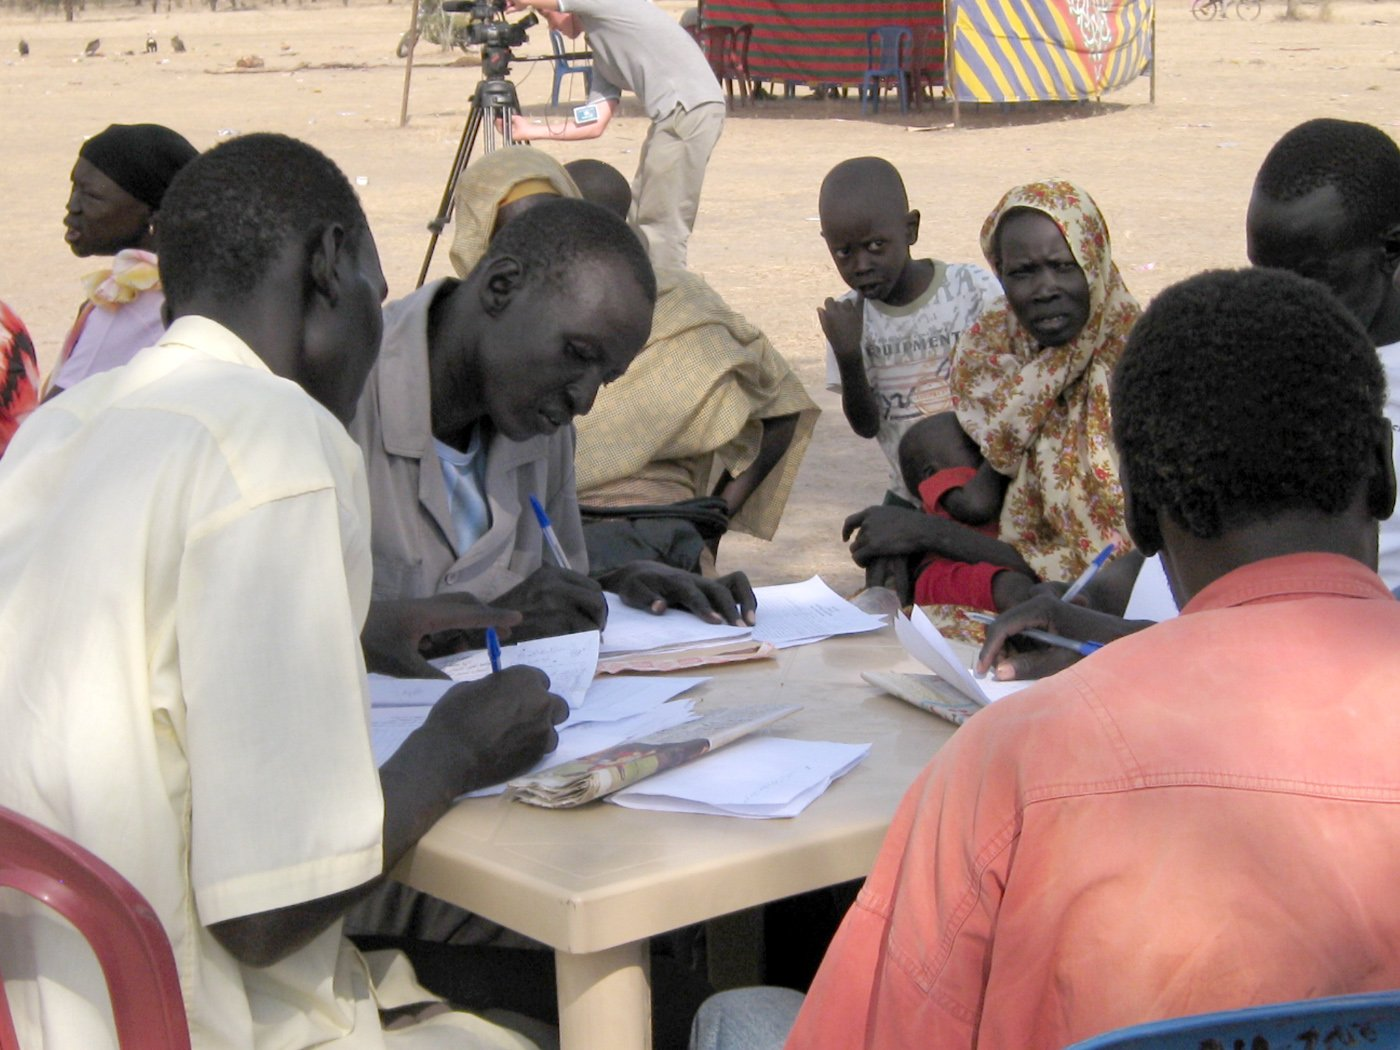 Returnees from Khartoum registering in Abyei